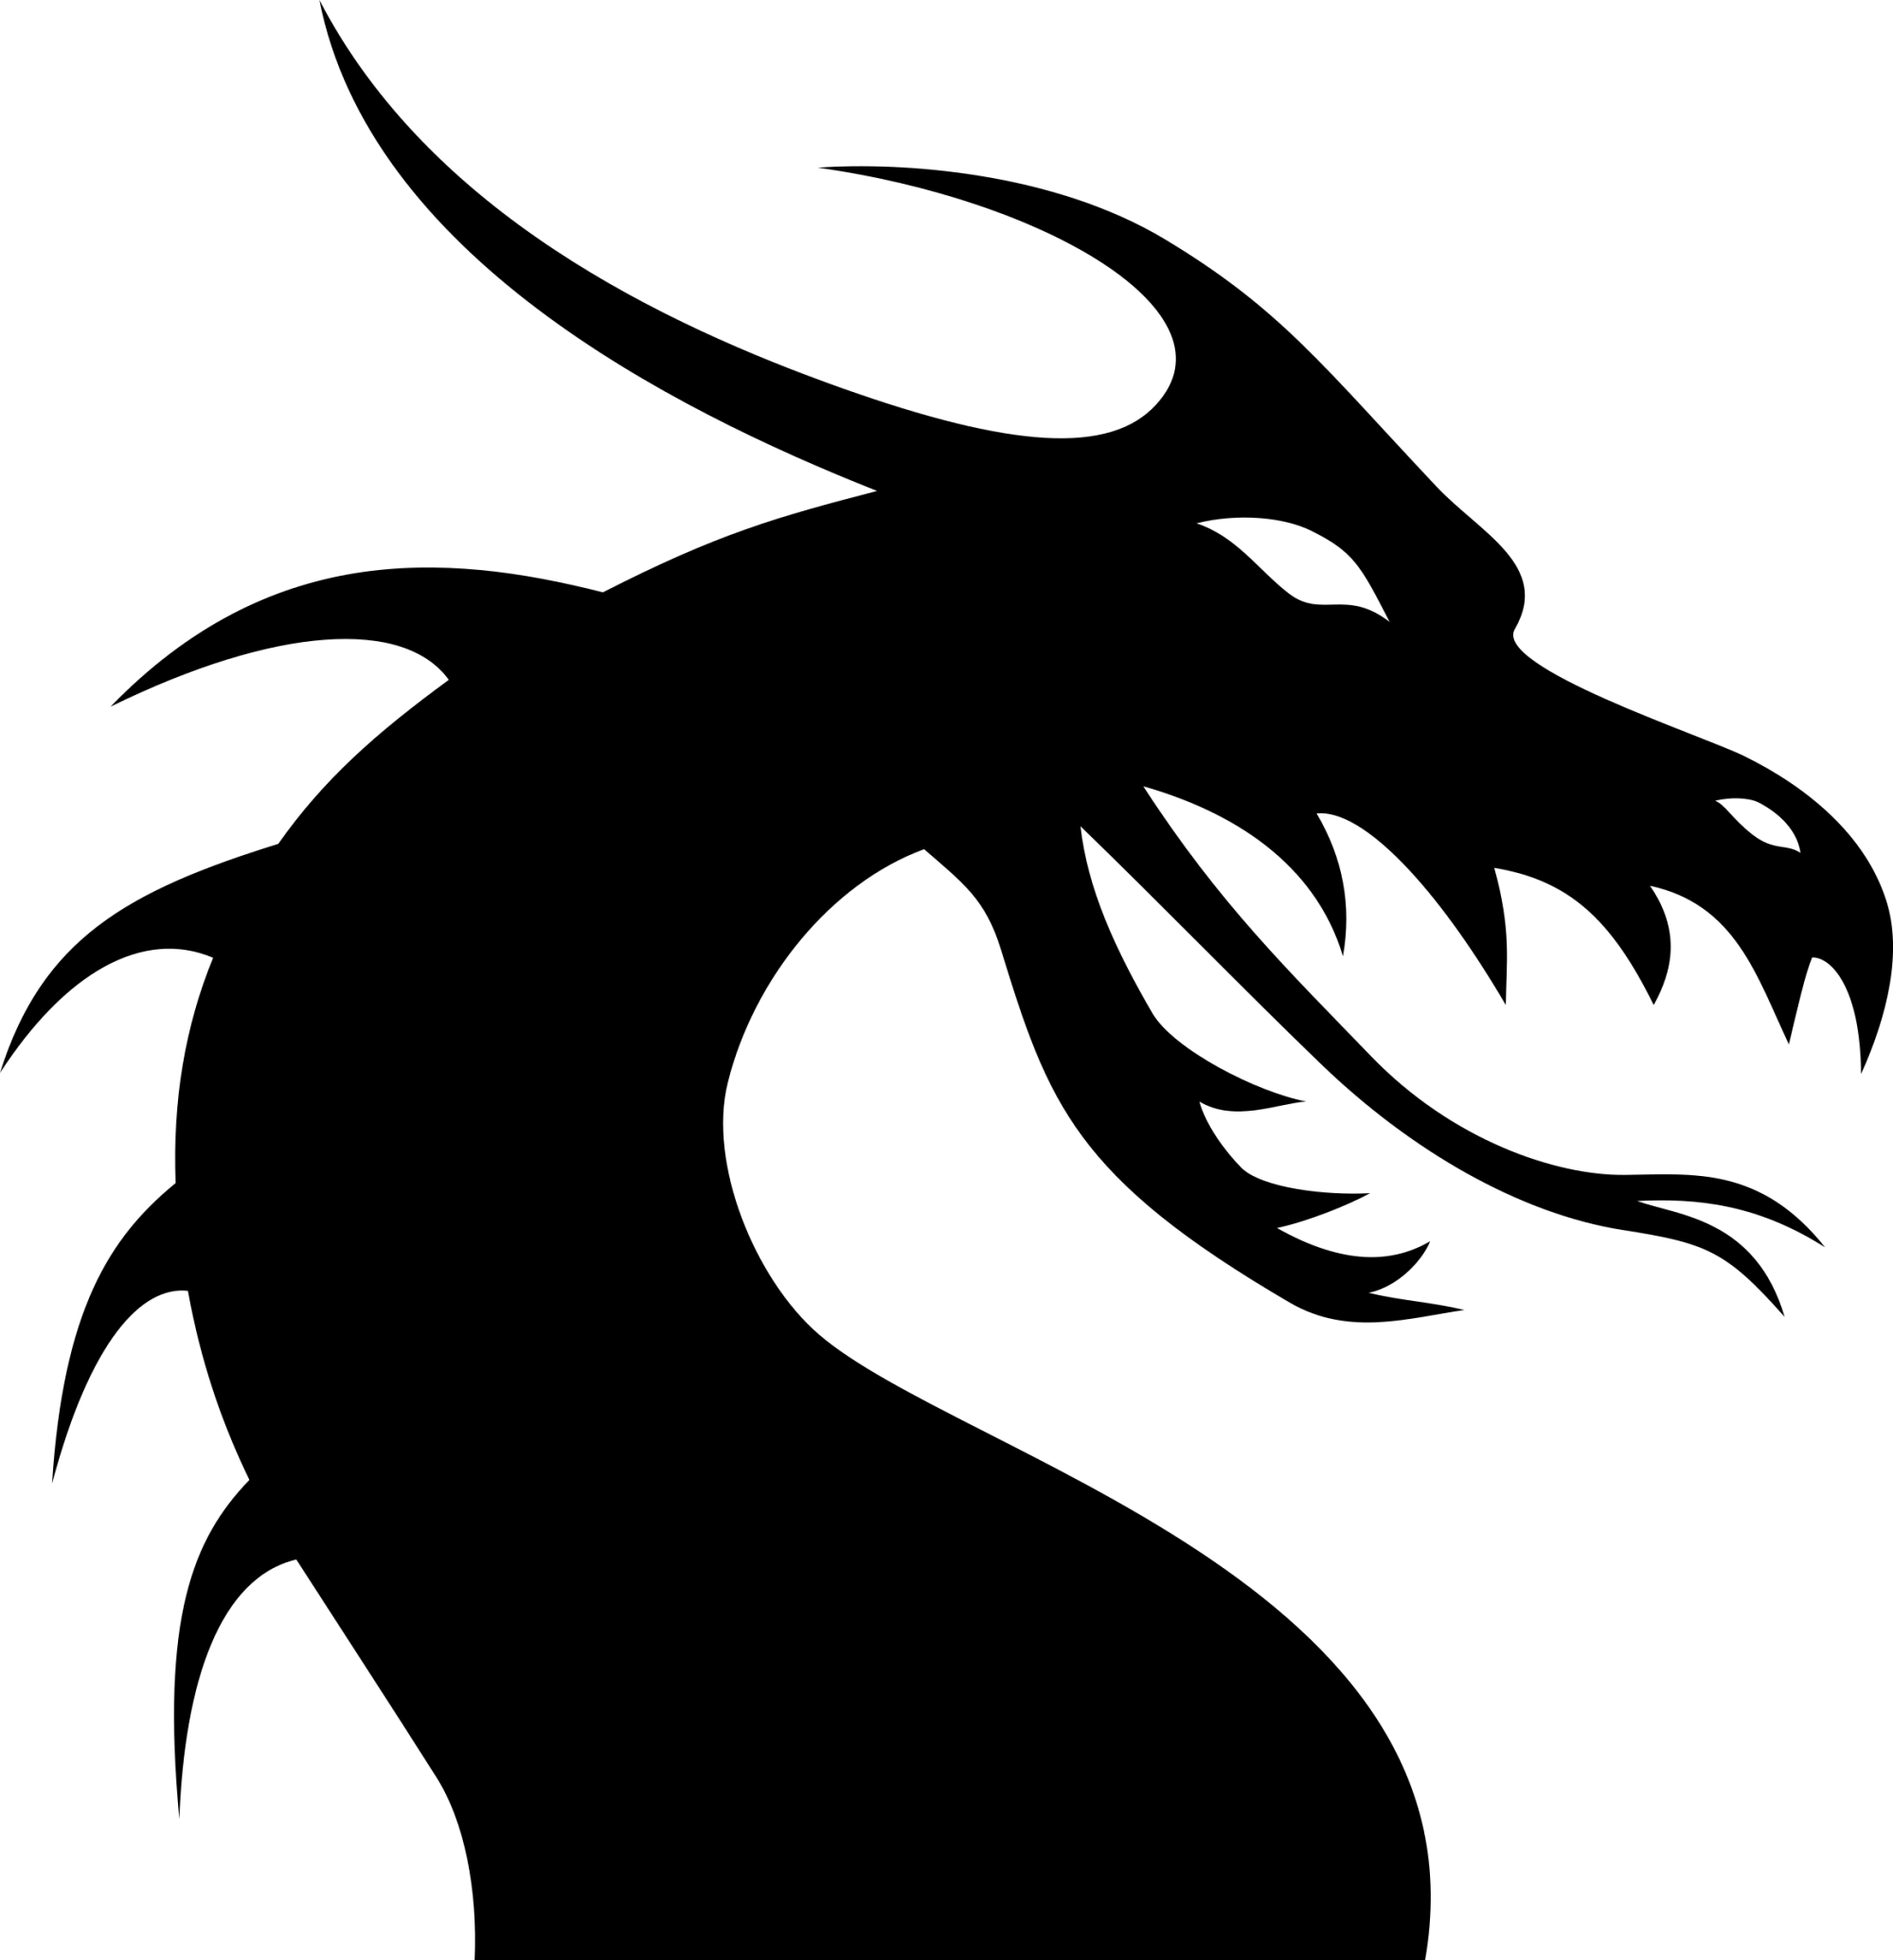 hight resolution of free photos vector images dragon head vector clipart